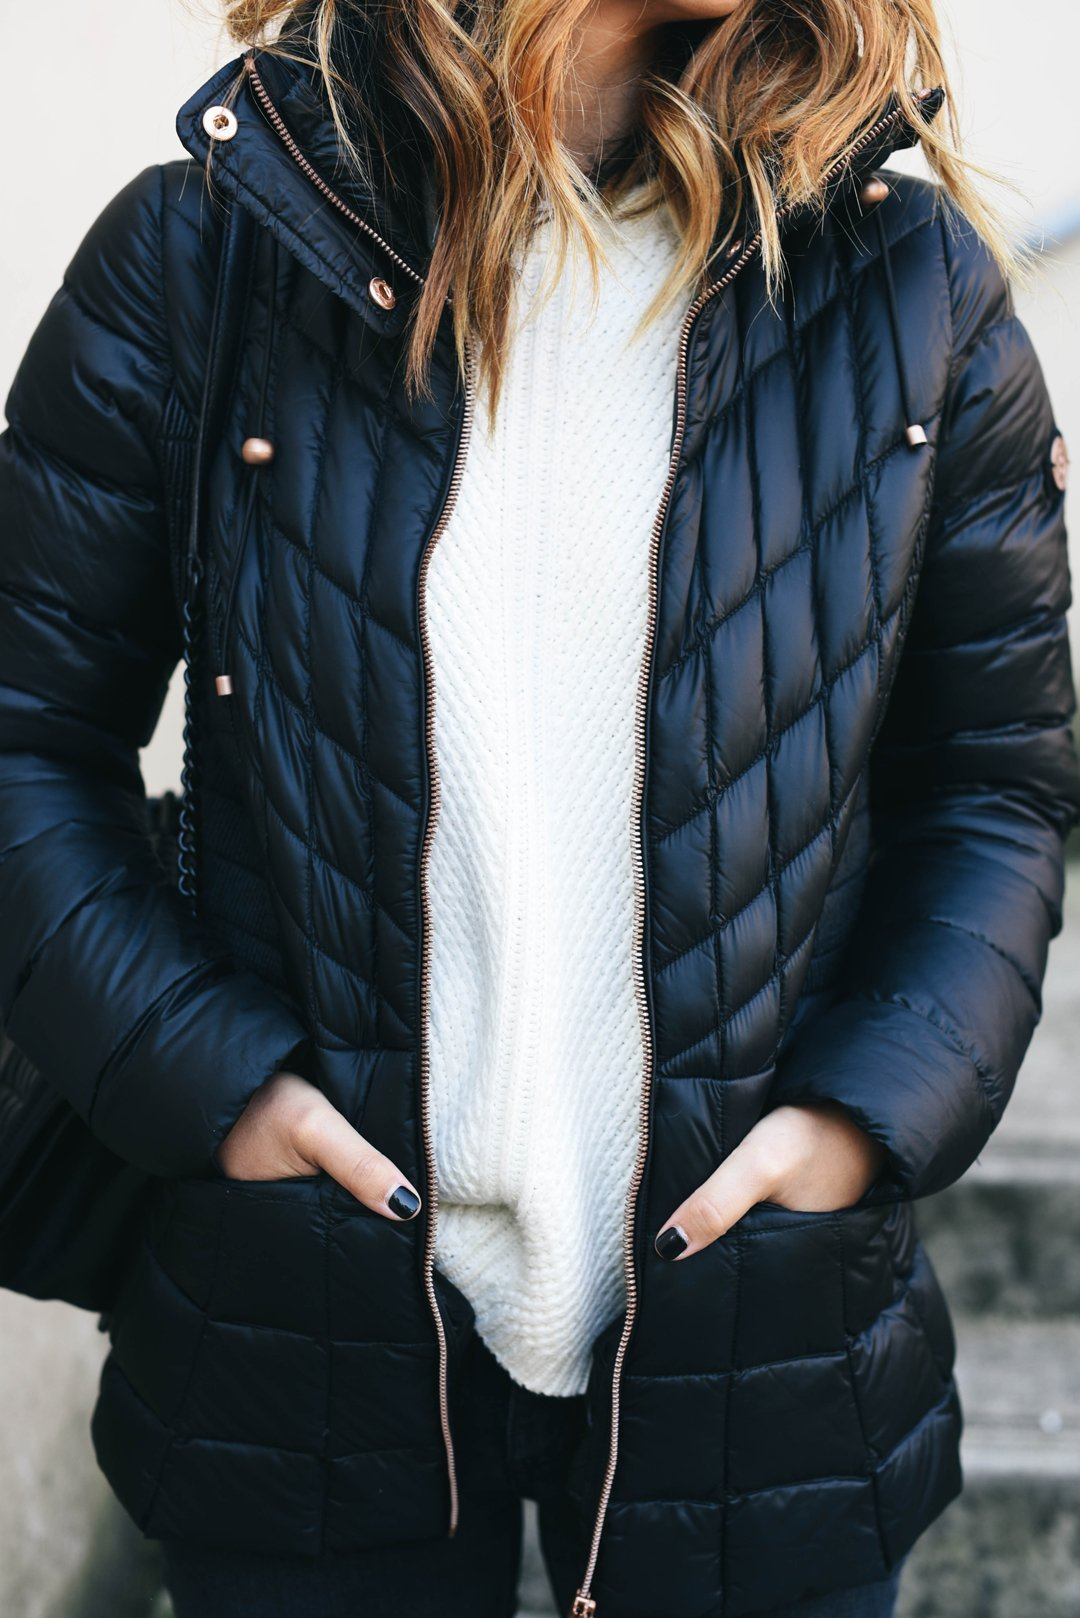 crystalin-marie-wearing-bernardo-packable-jacket-with-down-primaloft-fill